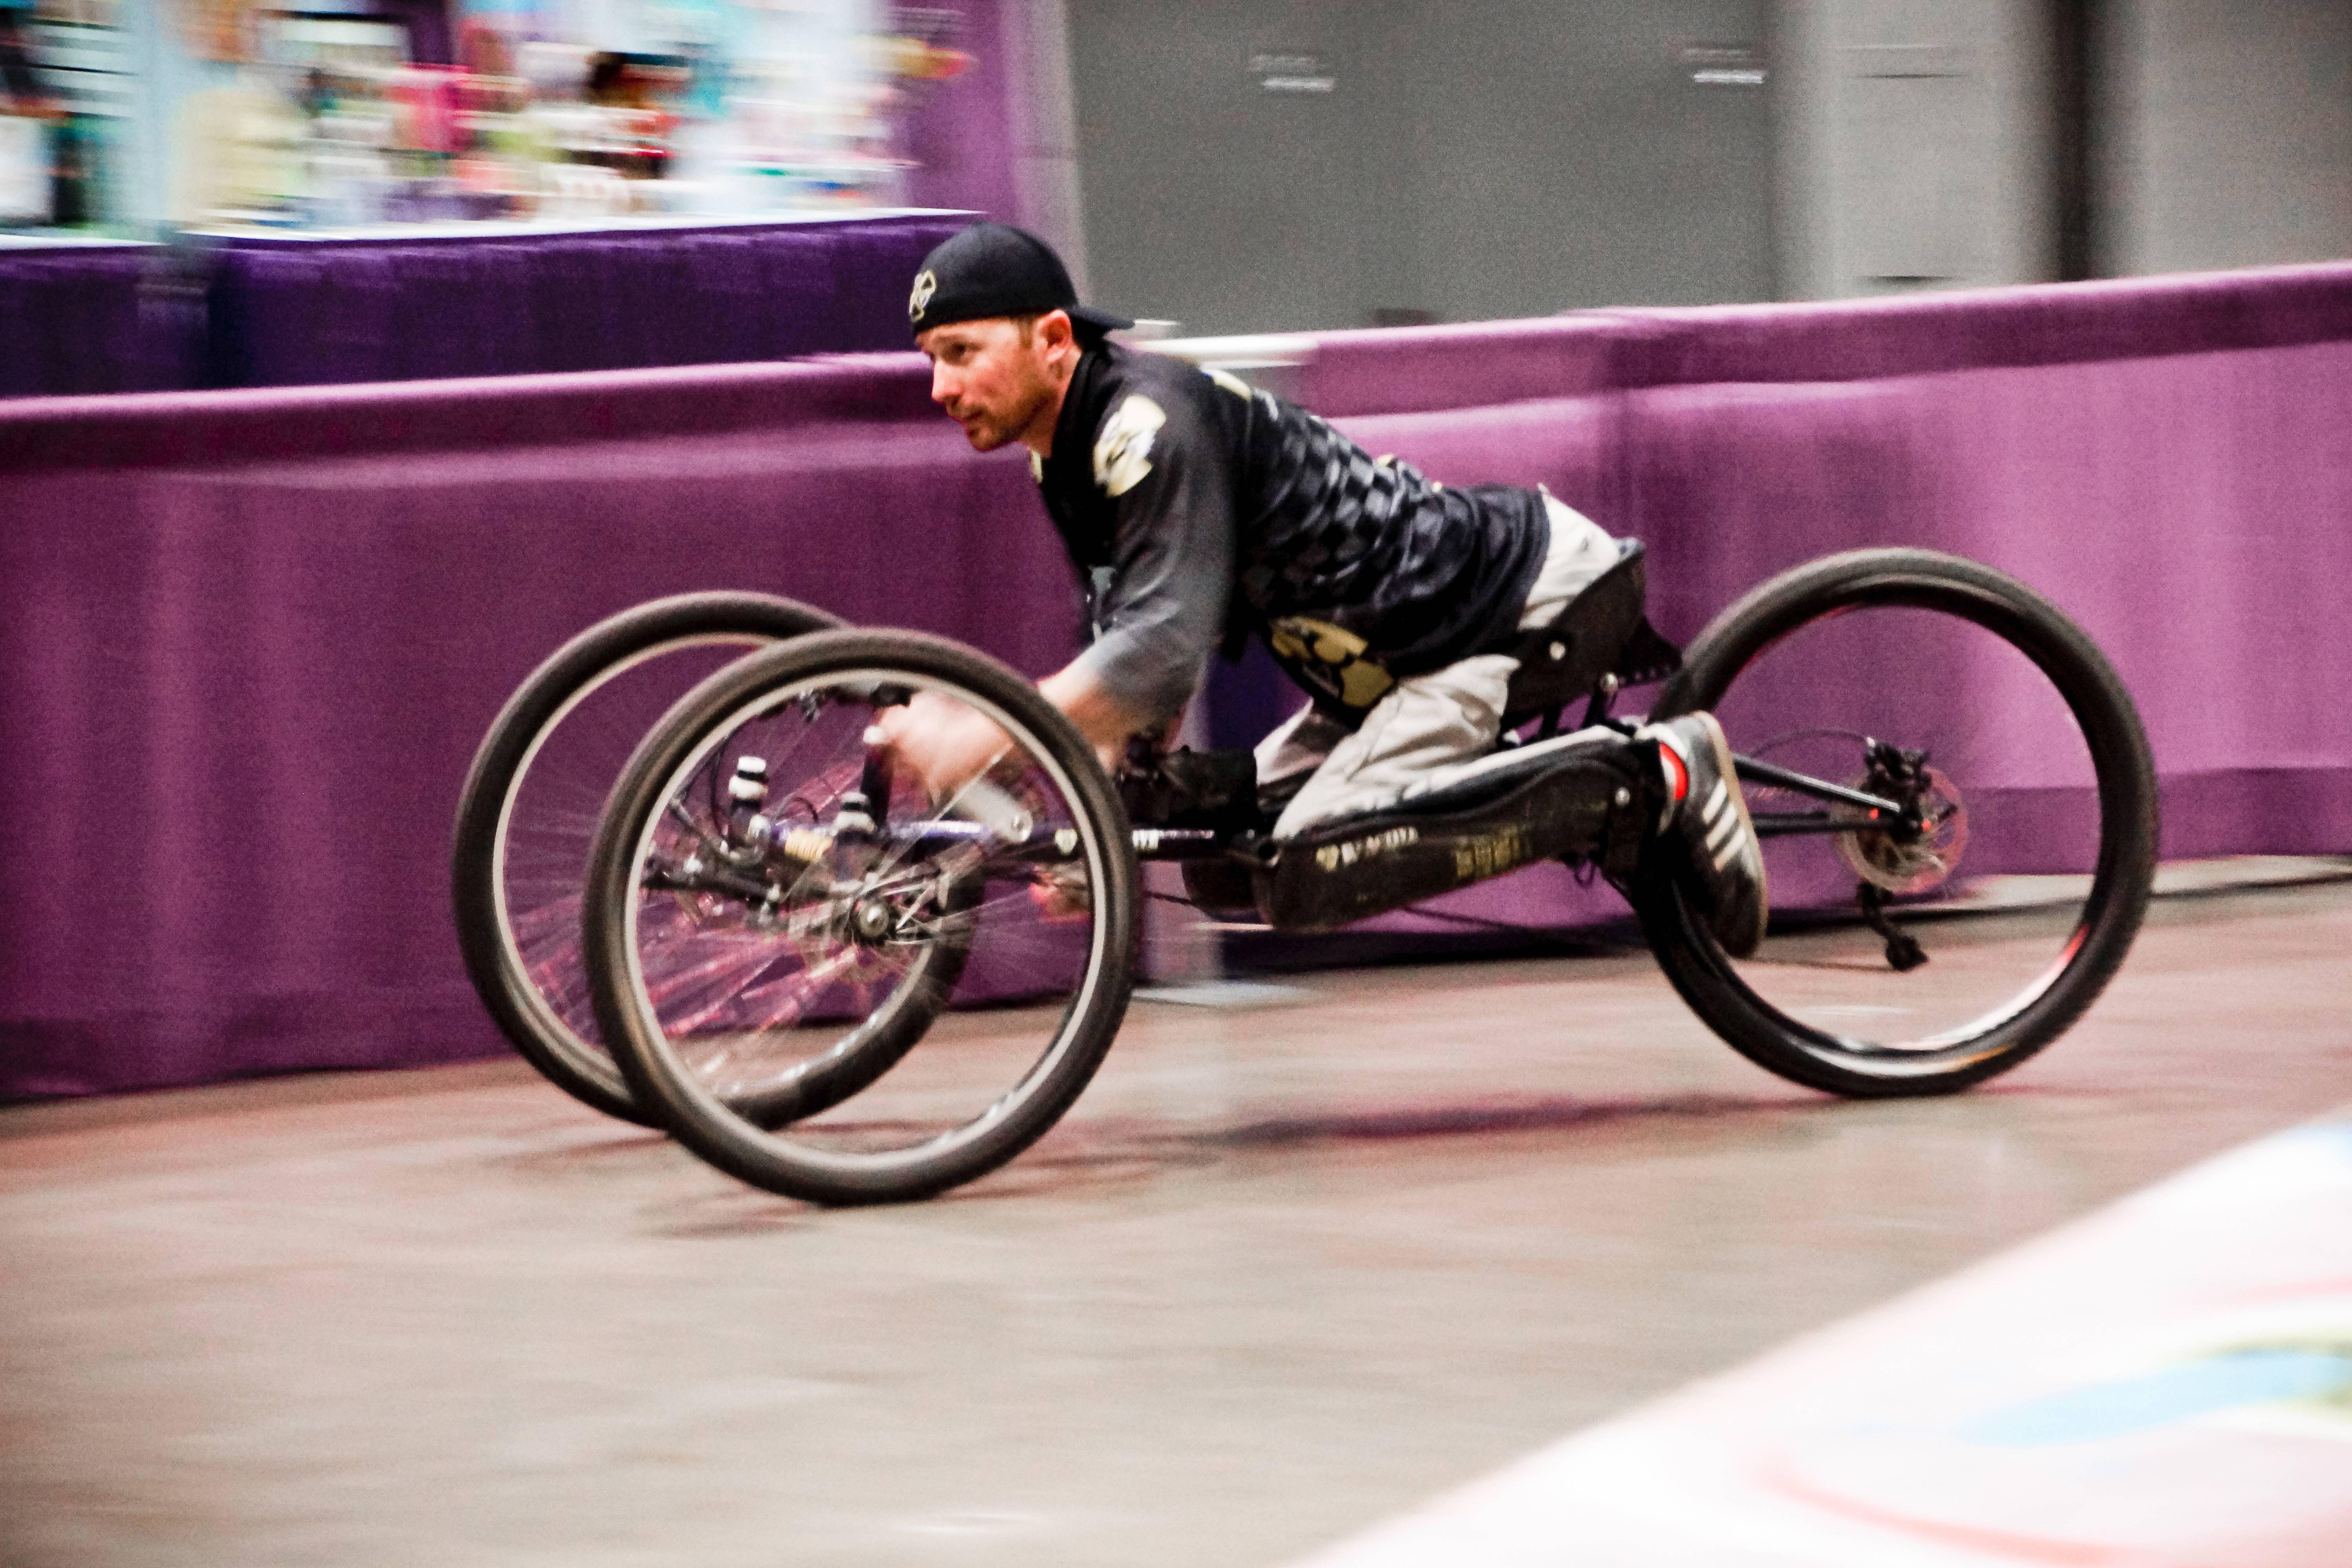 Do you feel the need for speed? Abilities Expo vendors offer a wide range of products for the community of people with disabilities, including handcycles.